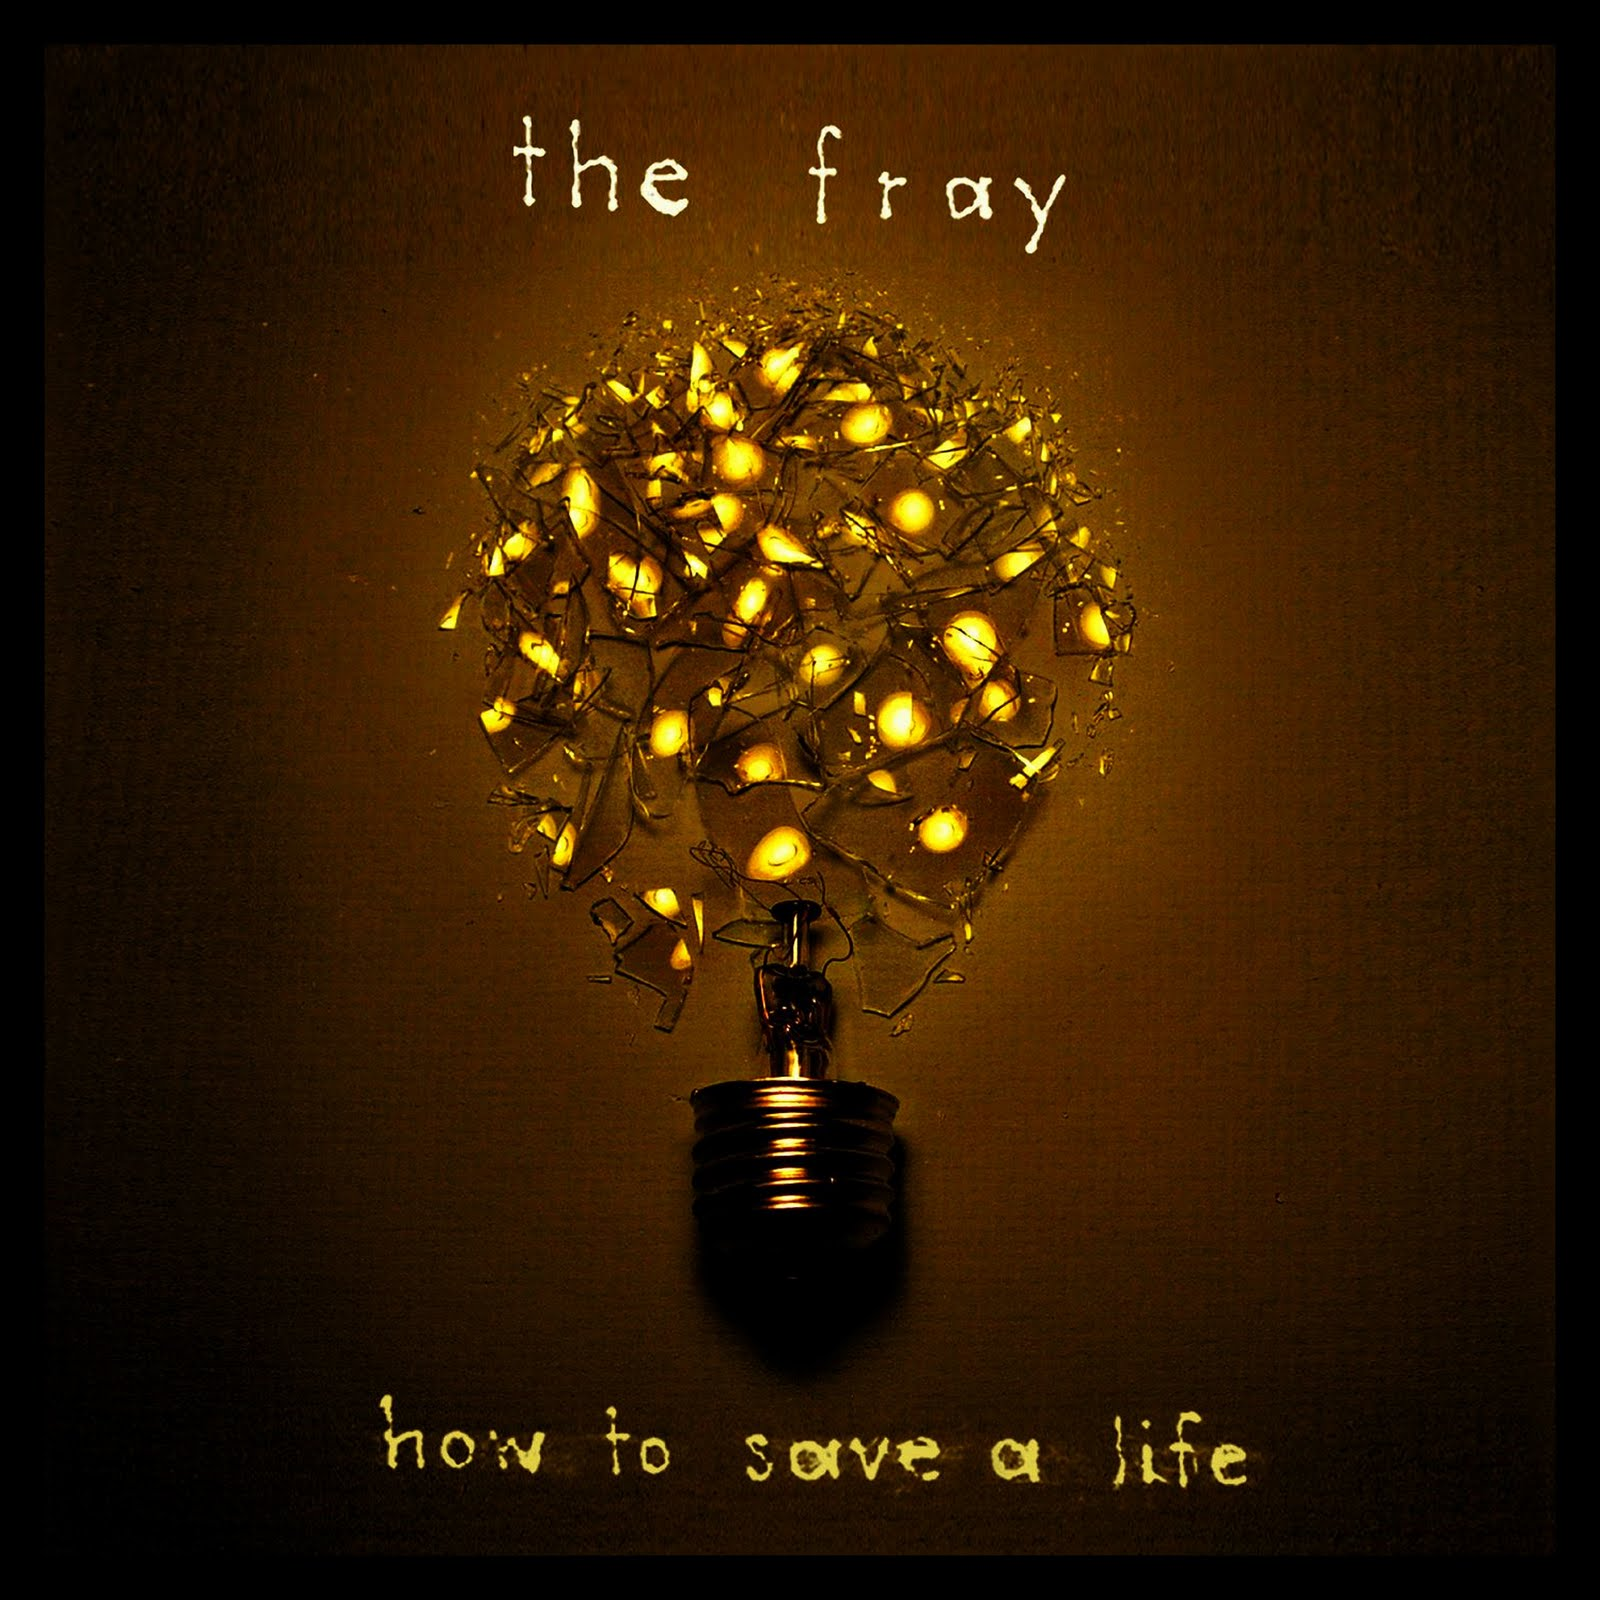 http://2.bp.blogspot.com/_rNf6nogJIdk/TJSeM0K4nlI/AAAAAAAAACE/_Nk9Hu3h7Ac/s1600/How+to+Save+a+Life+Album+Cover+for+The+Fray1.jpg